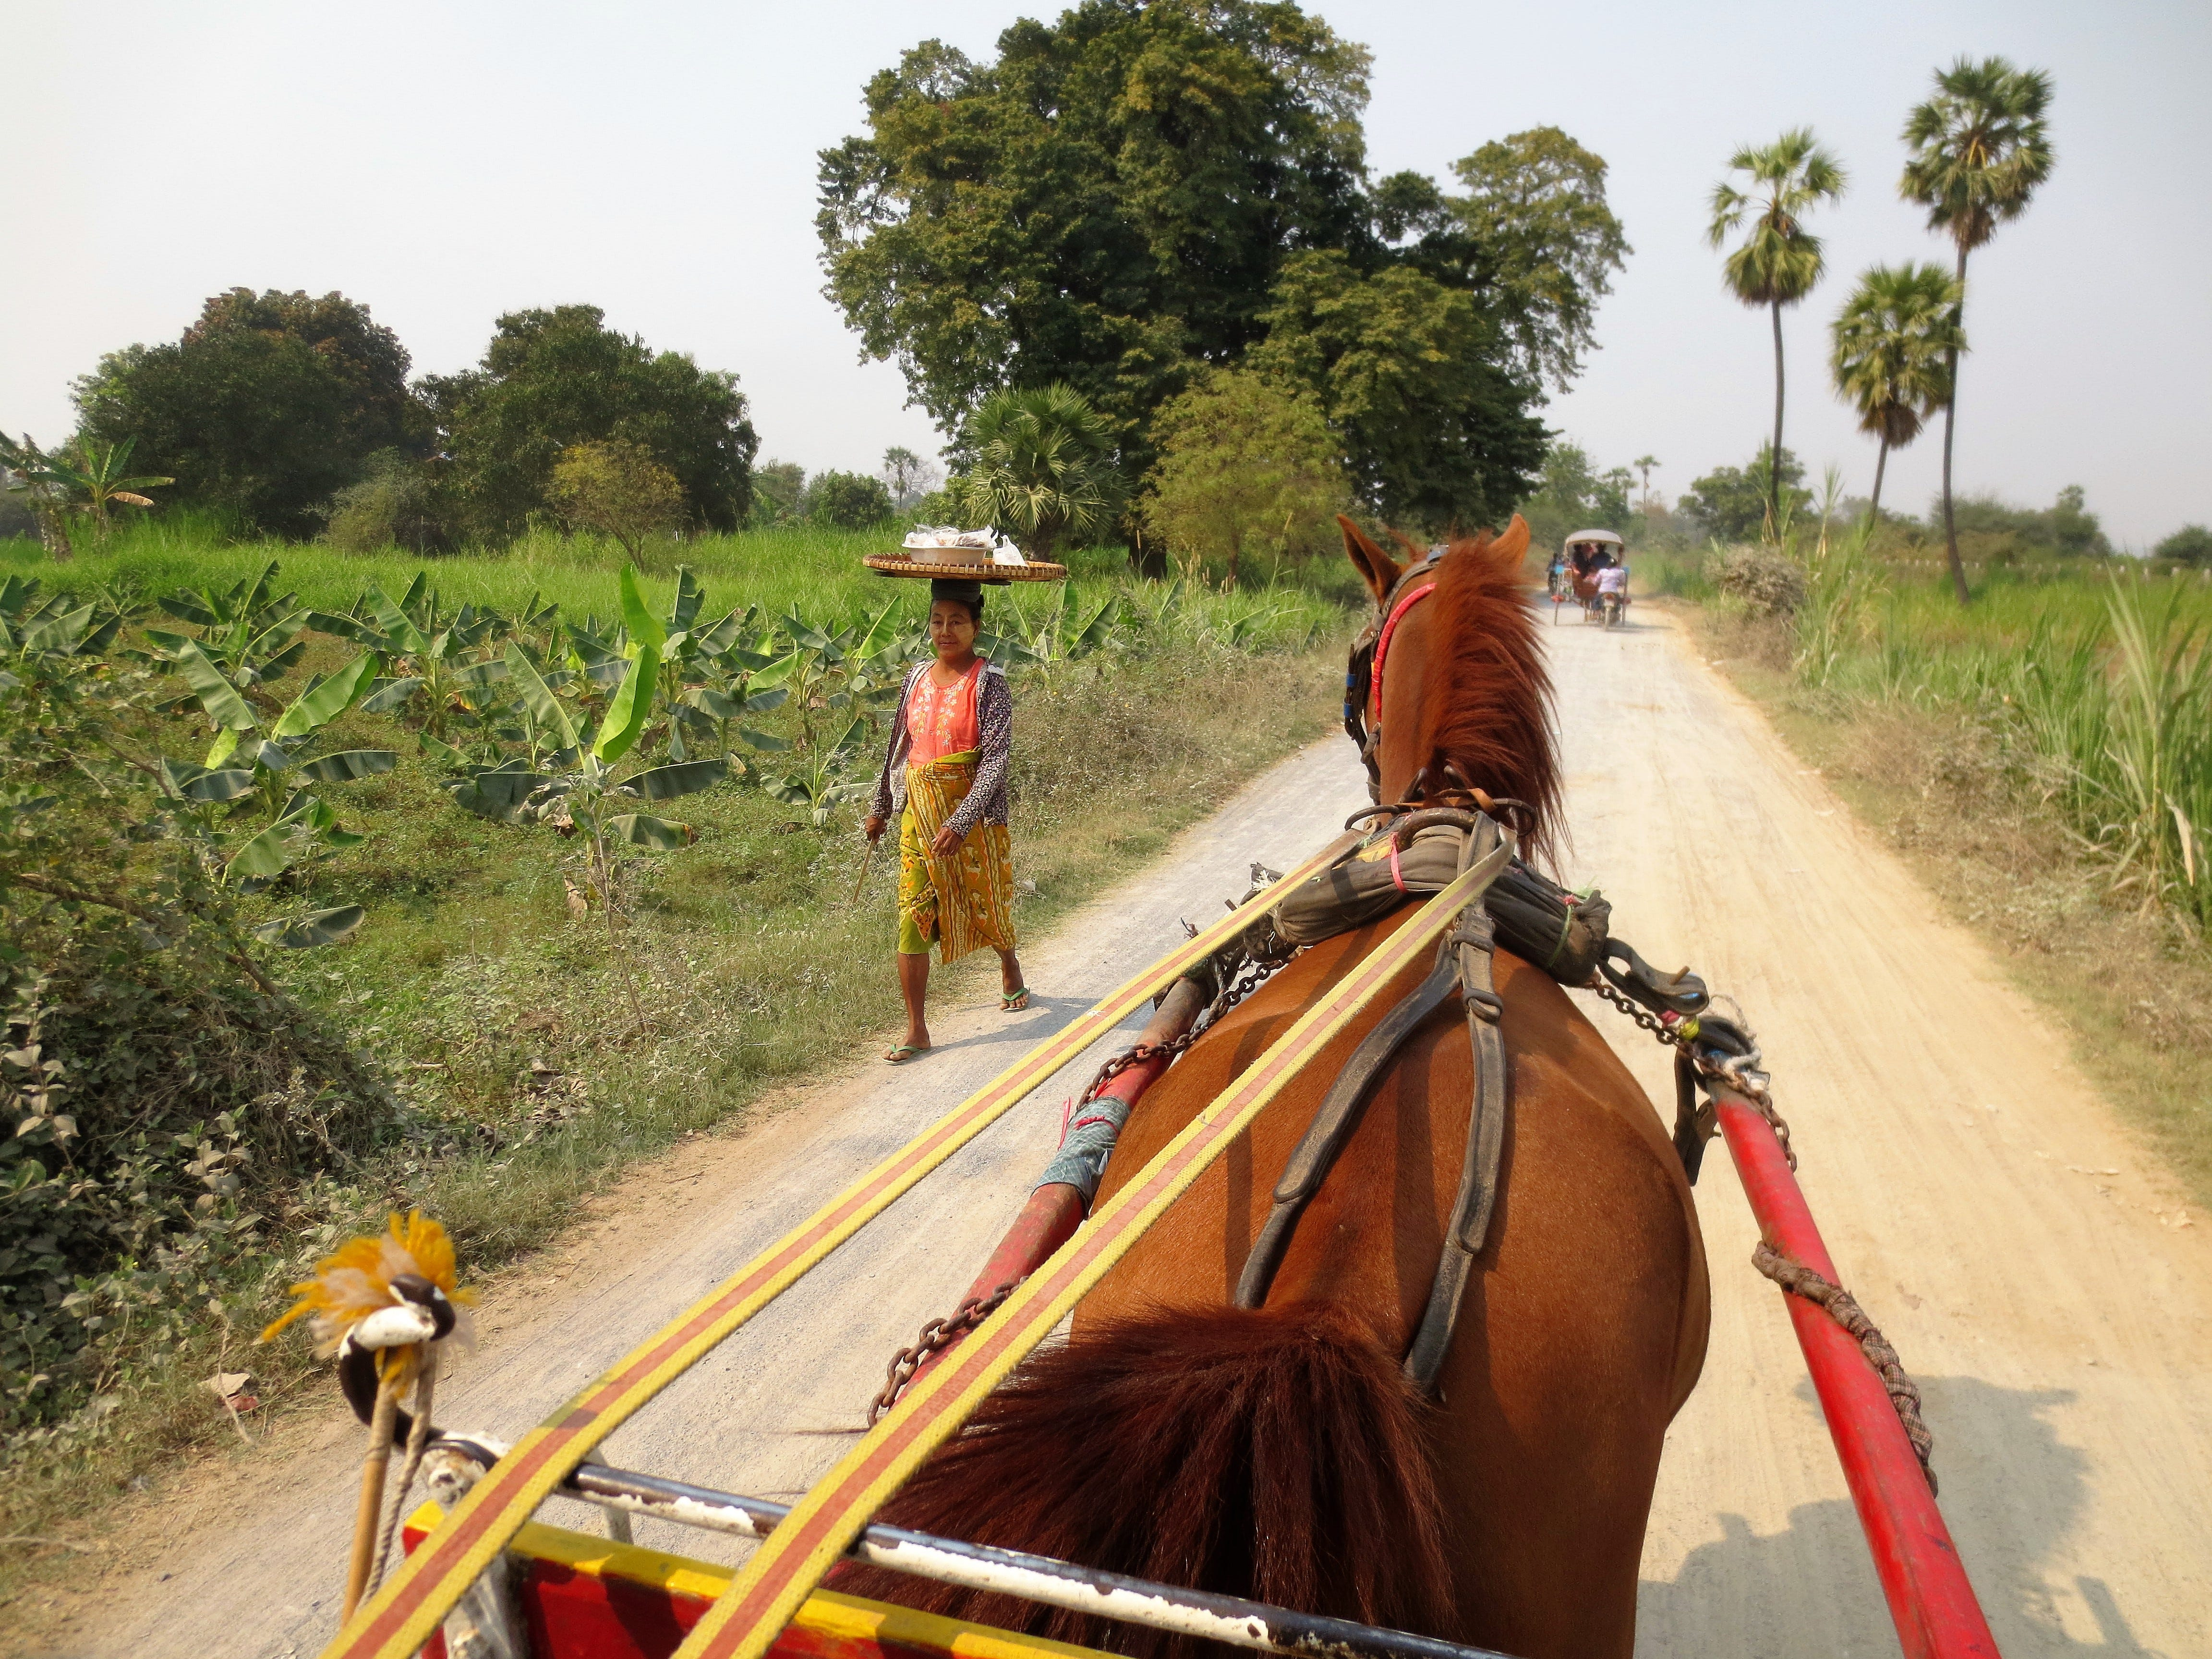 Riding in a horse cart through the Myanmar countryside.